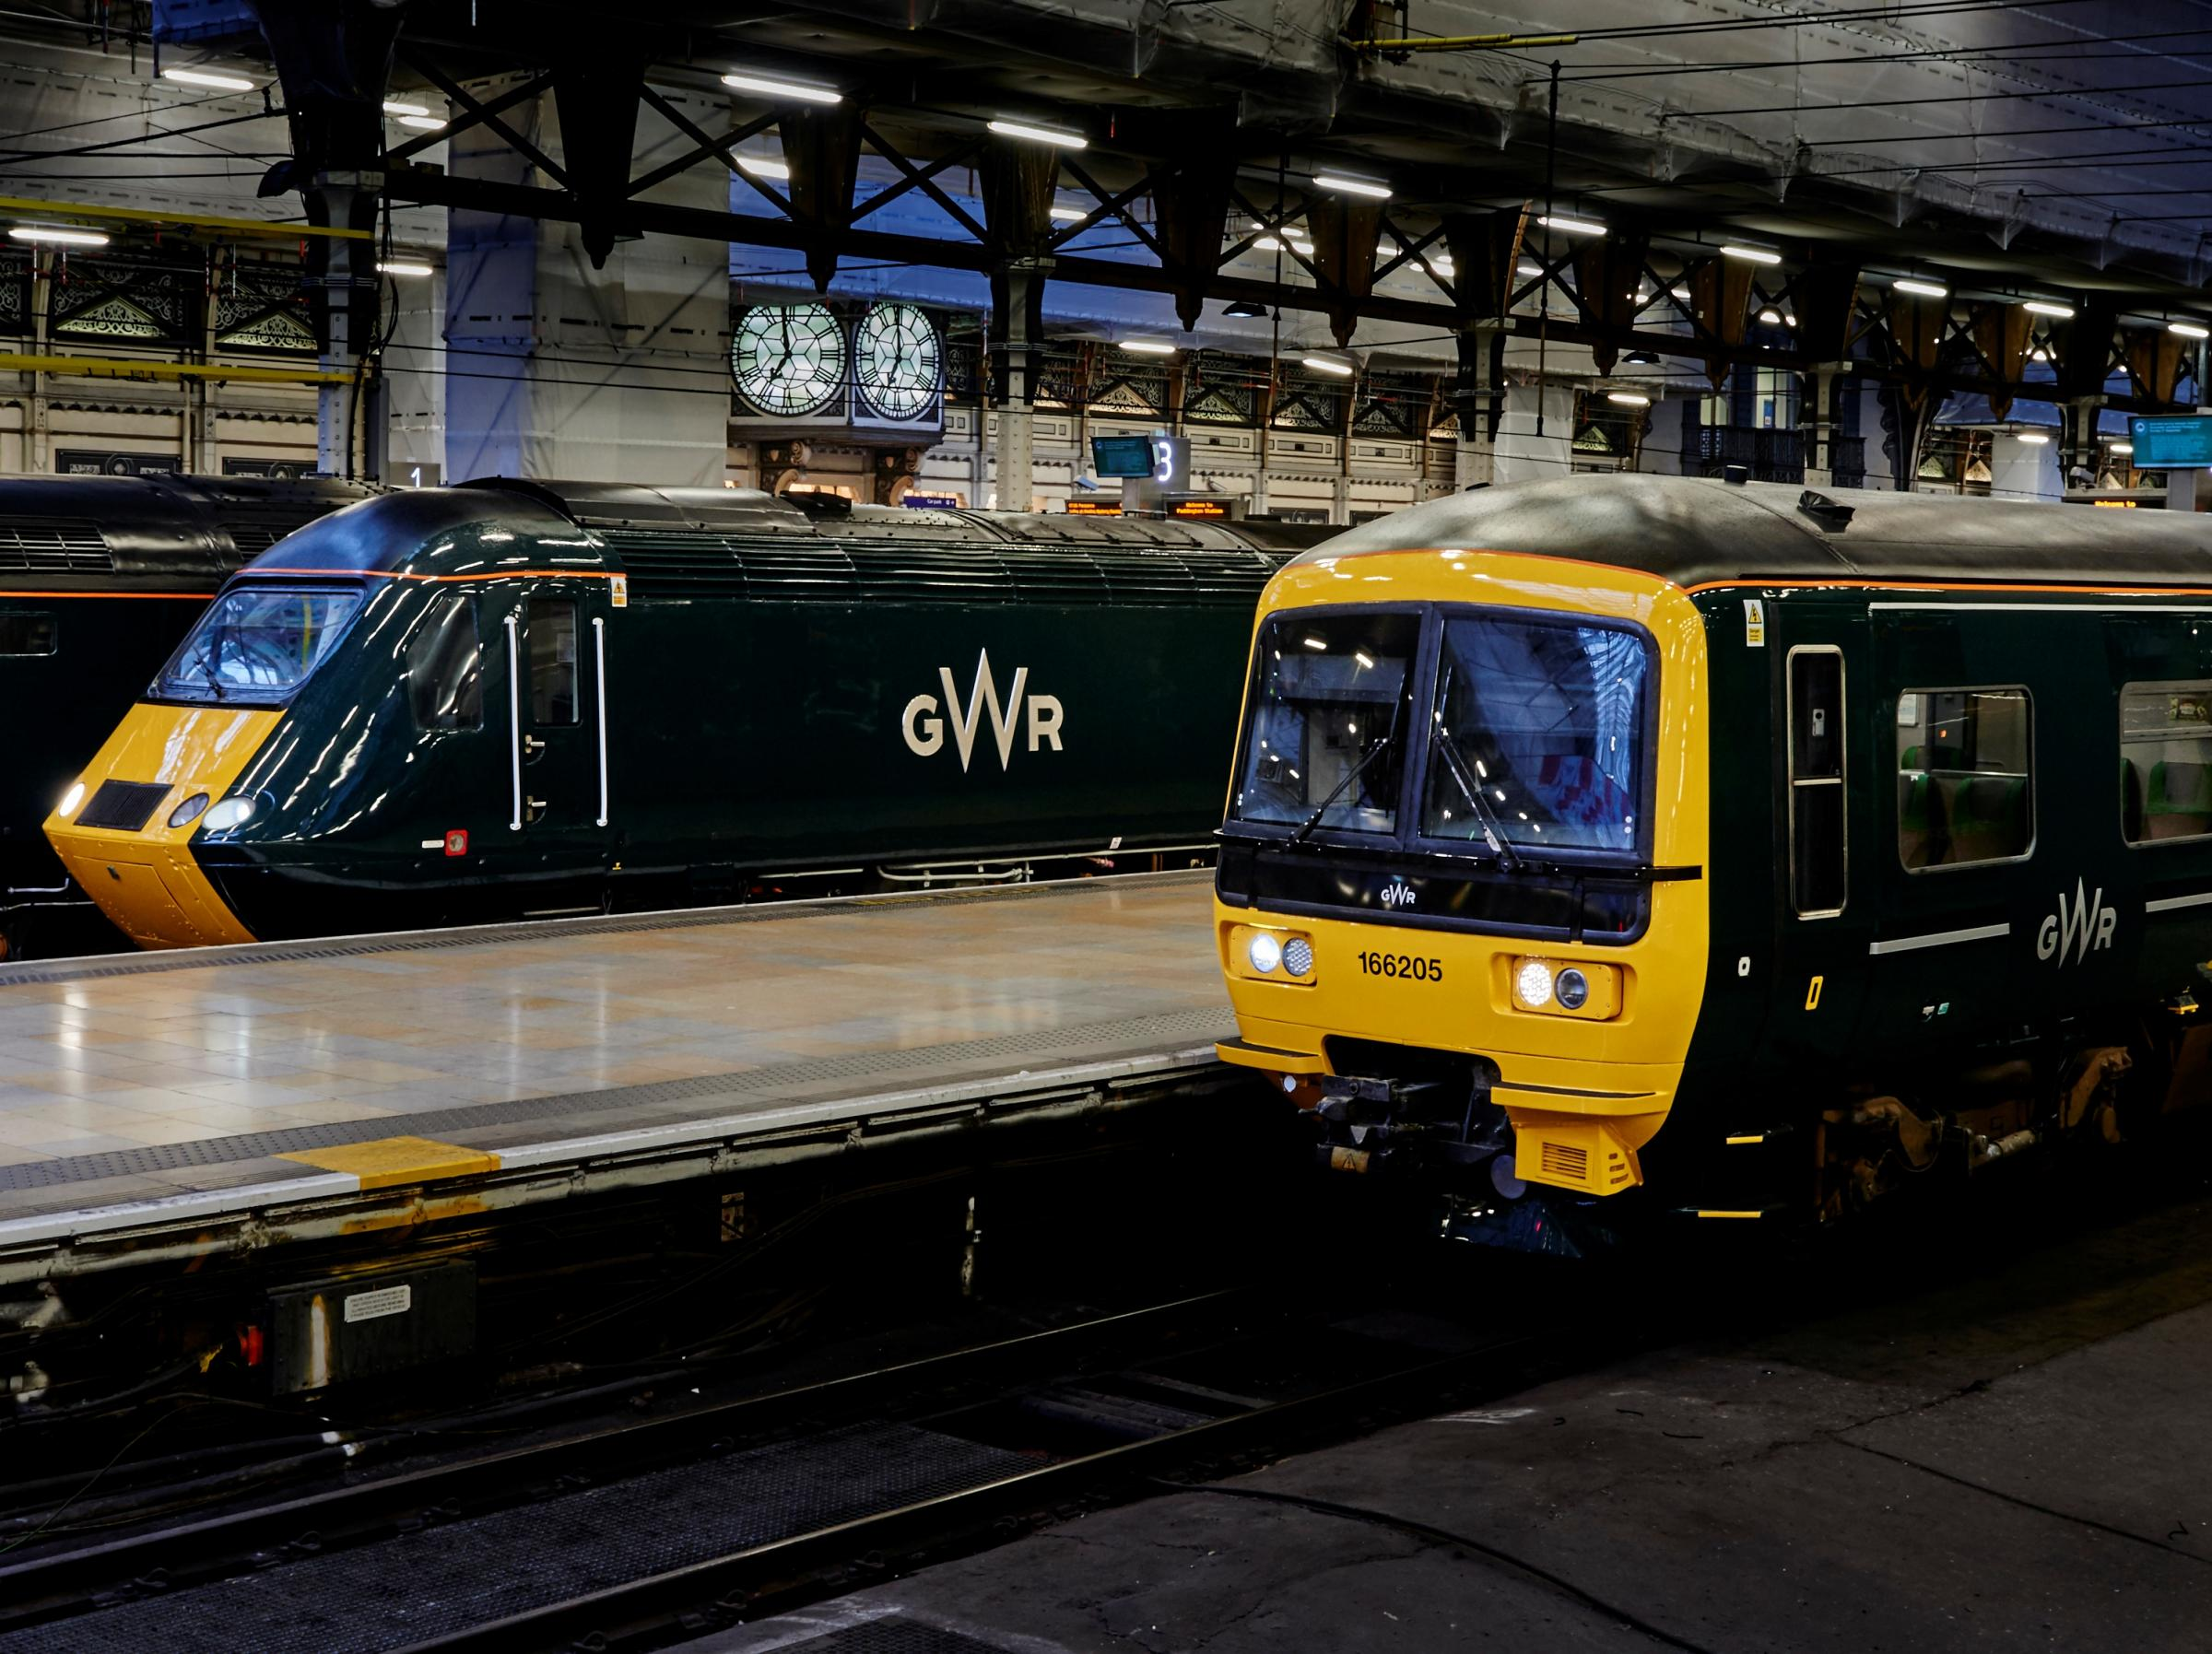 TRAVEL: Delays on trains as 999 crews respond to incident near railway lines